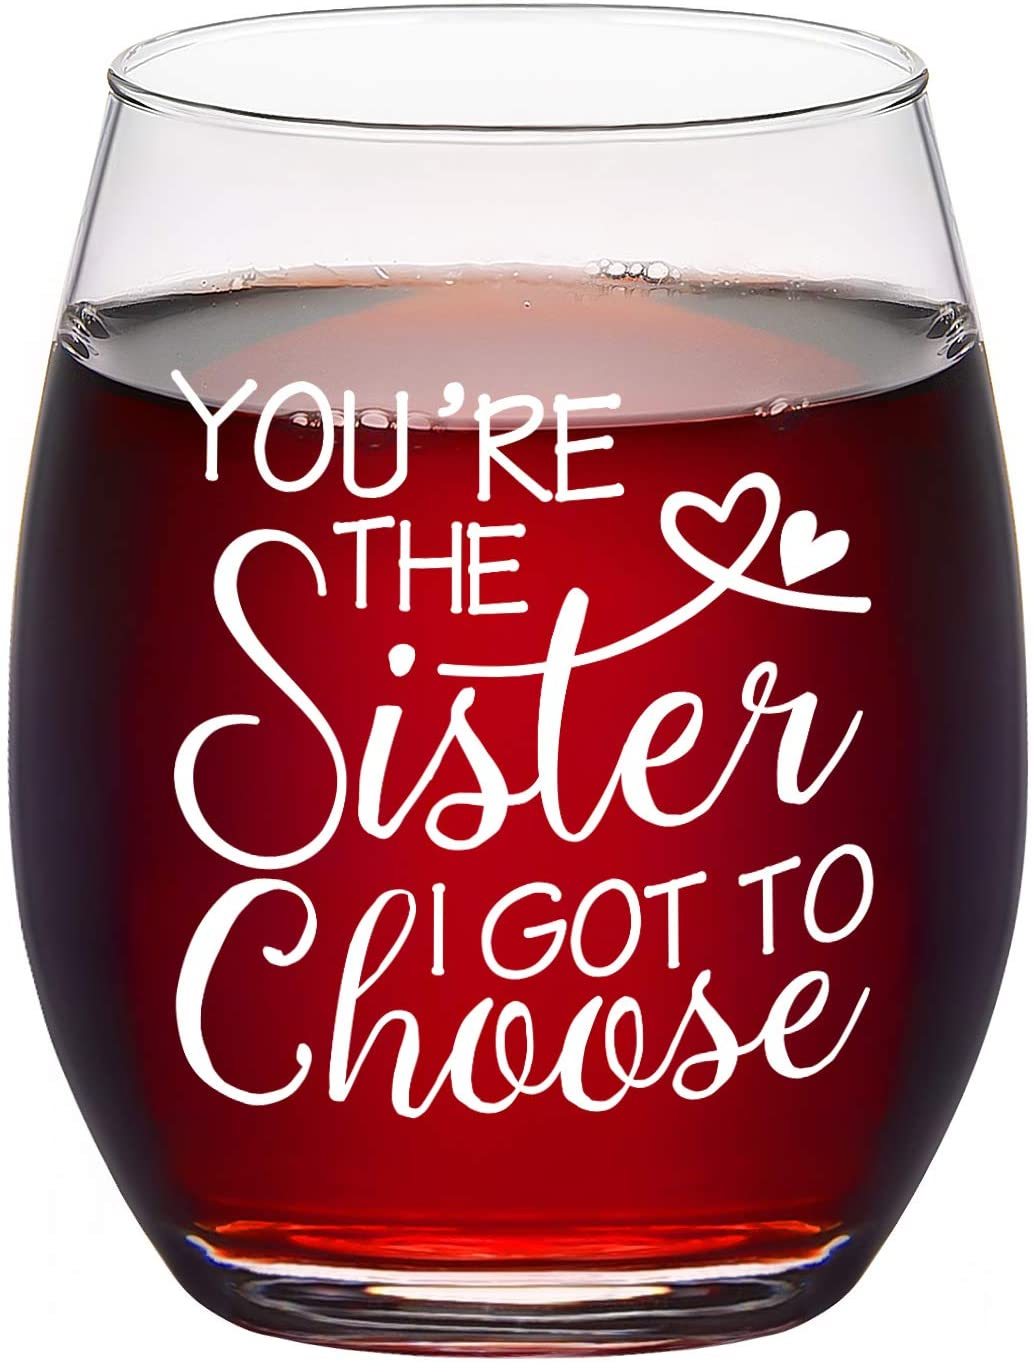 Sister Gift - You're The Sister I Got To Choose Stemless Wine Glass 15 Oz, Sister Wine Glass for Women Girl Friend Soul Sister BFF, Gift Idea for Birthday Galentines Day Christmas